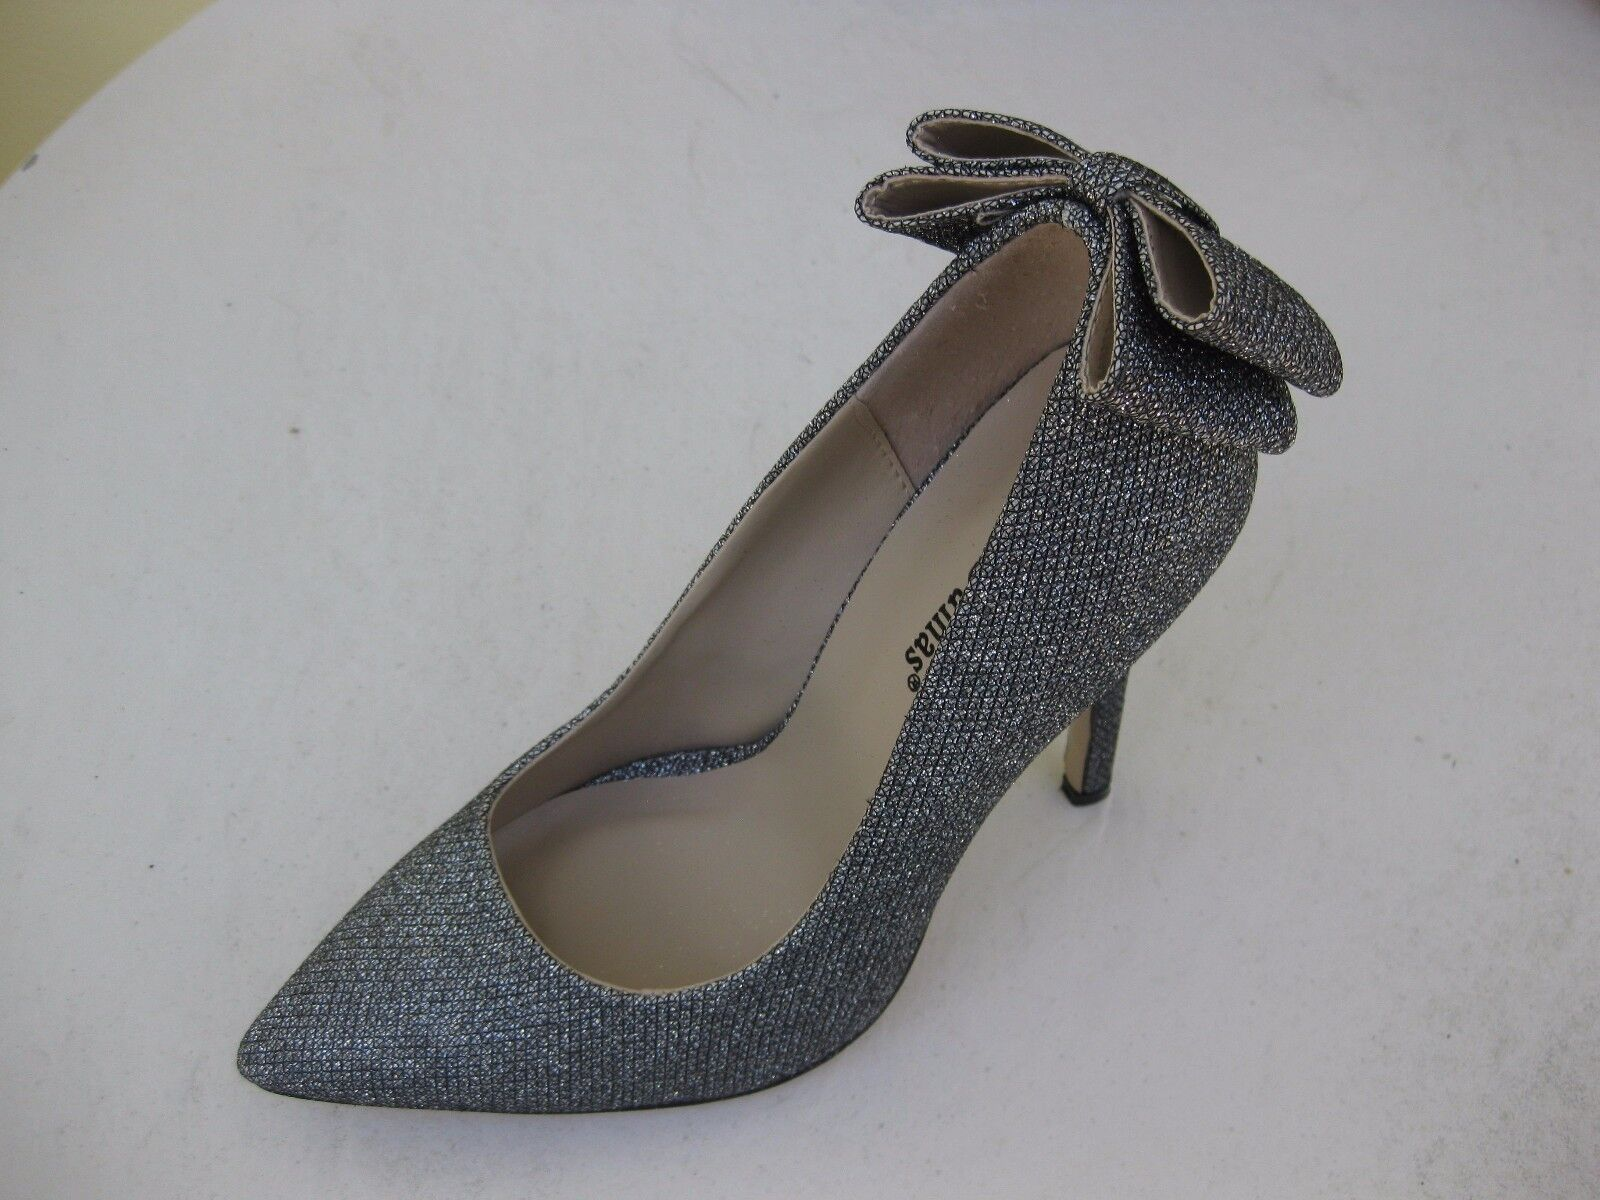 Pierre Dumas Womens Shoes NEW Bow $55 Alessia Pewter Steel Bow NEW Pump 7.5 M 6a31e0